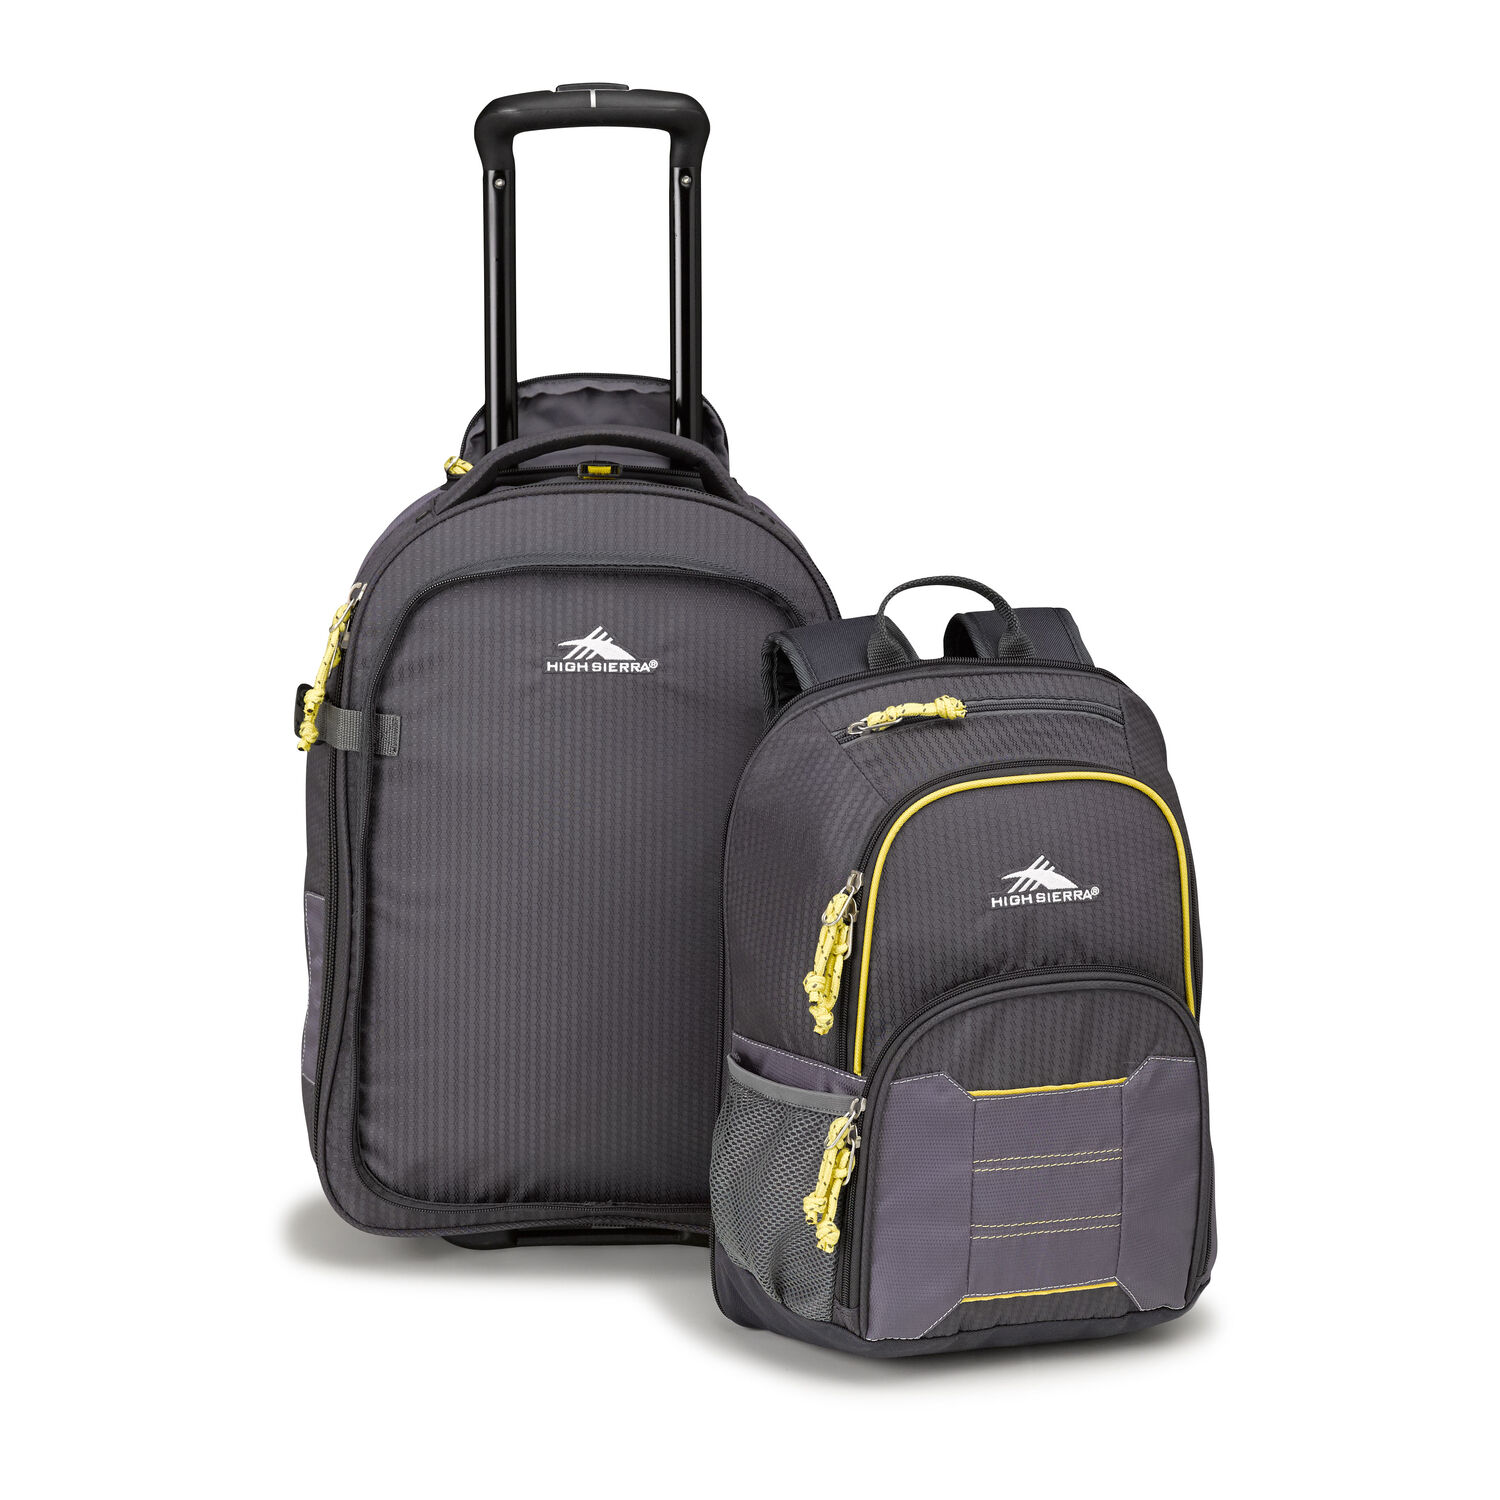 High Sierra Ultimate Access 2 0 Carry On Wheeled Backpack